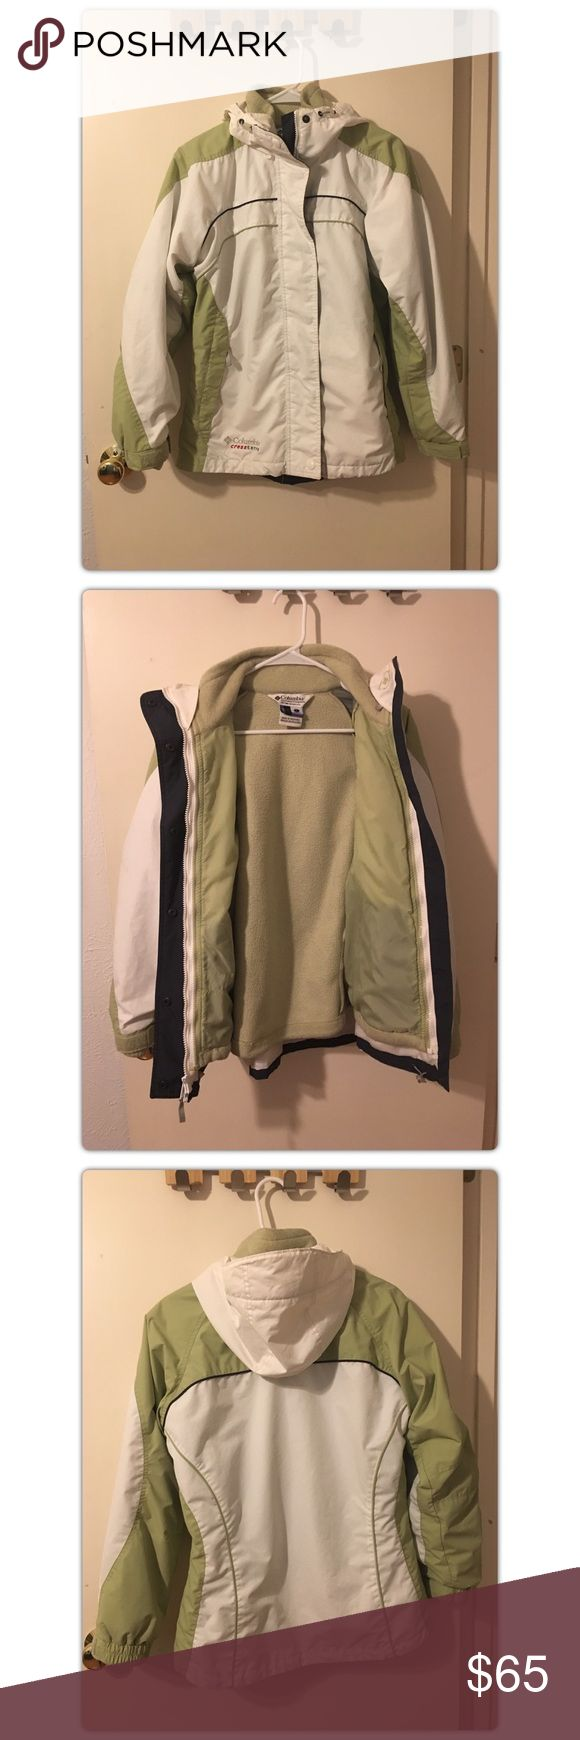 Columbia 3-in-1 Cross-Terra Coat Columbia 3-in-1 Cross-Terra Coat• Green and White• Size Small• 3 ways to wear• Shell can be removed from fleece• Hood• Zip pockets• There are a few tiny stains on the coat (Please see last photos_Stains are very faint and may come out at the cleaners)• Very Warm (Worn in Alaska)• Shell is water resistant• Columbia Jackets & Coats